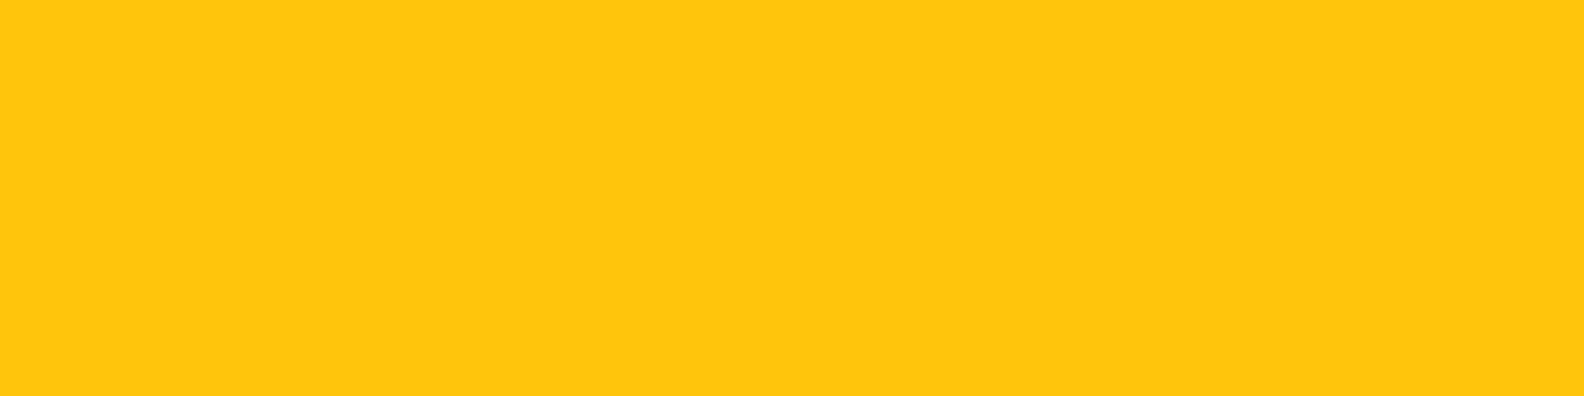 1584x396 Mikado Yellow Solid Color Background